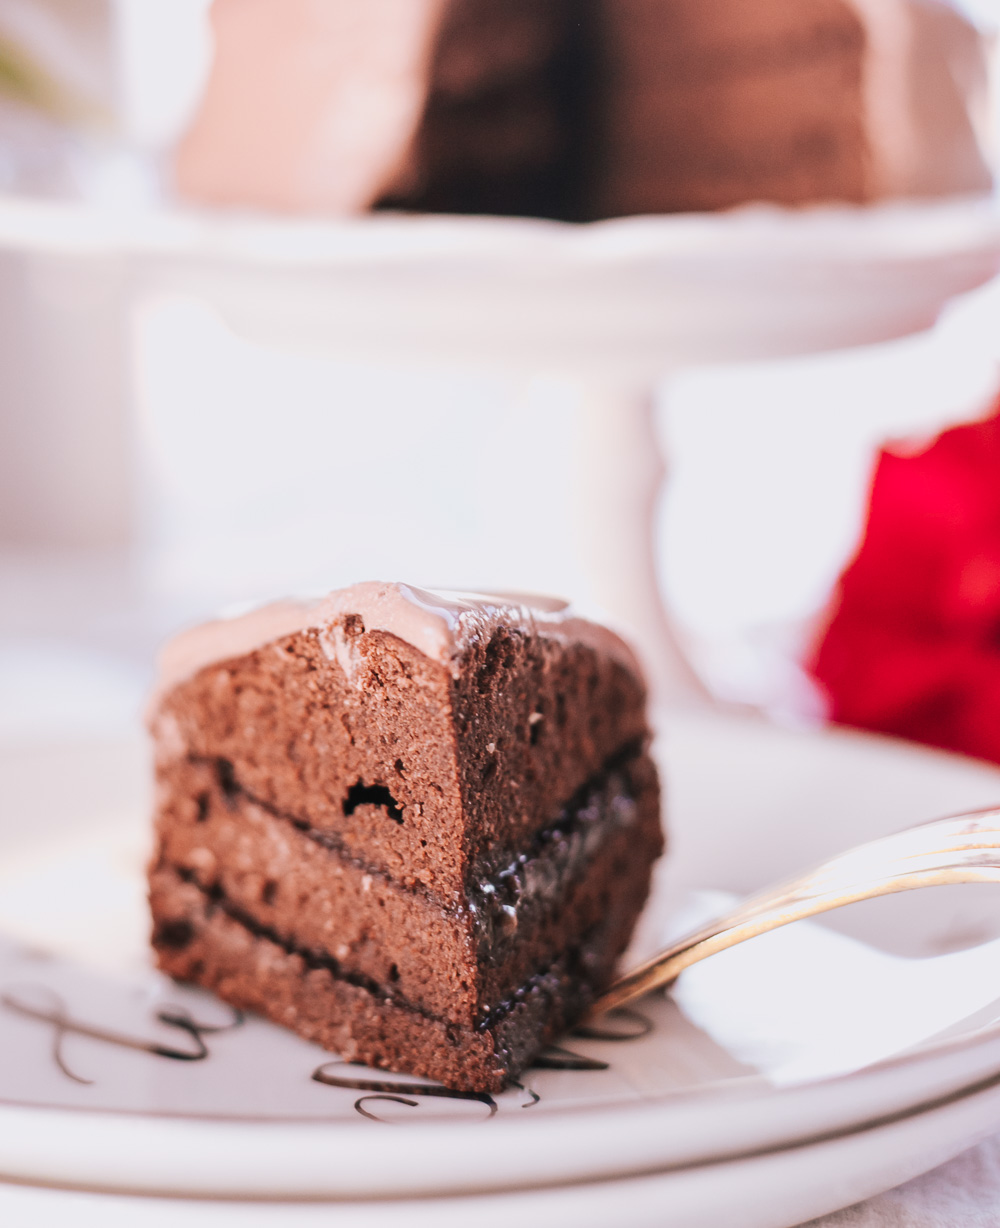 Healthy Low-Calorie Chocolate Fudge Cake With Chocolate Frosting is all-natural, easy to make, satisfying and is only 128 calories per slice!